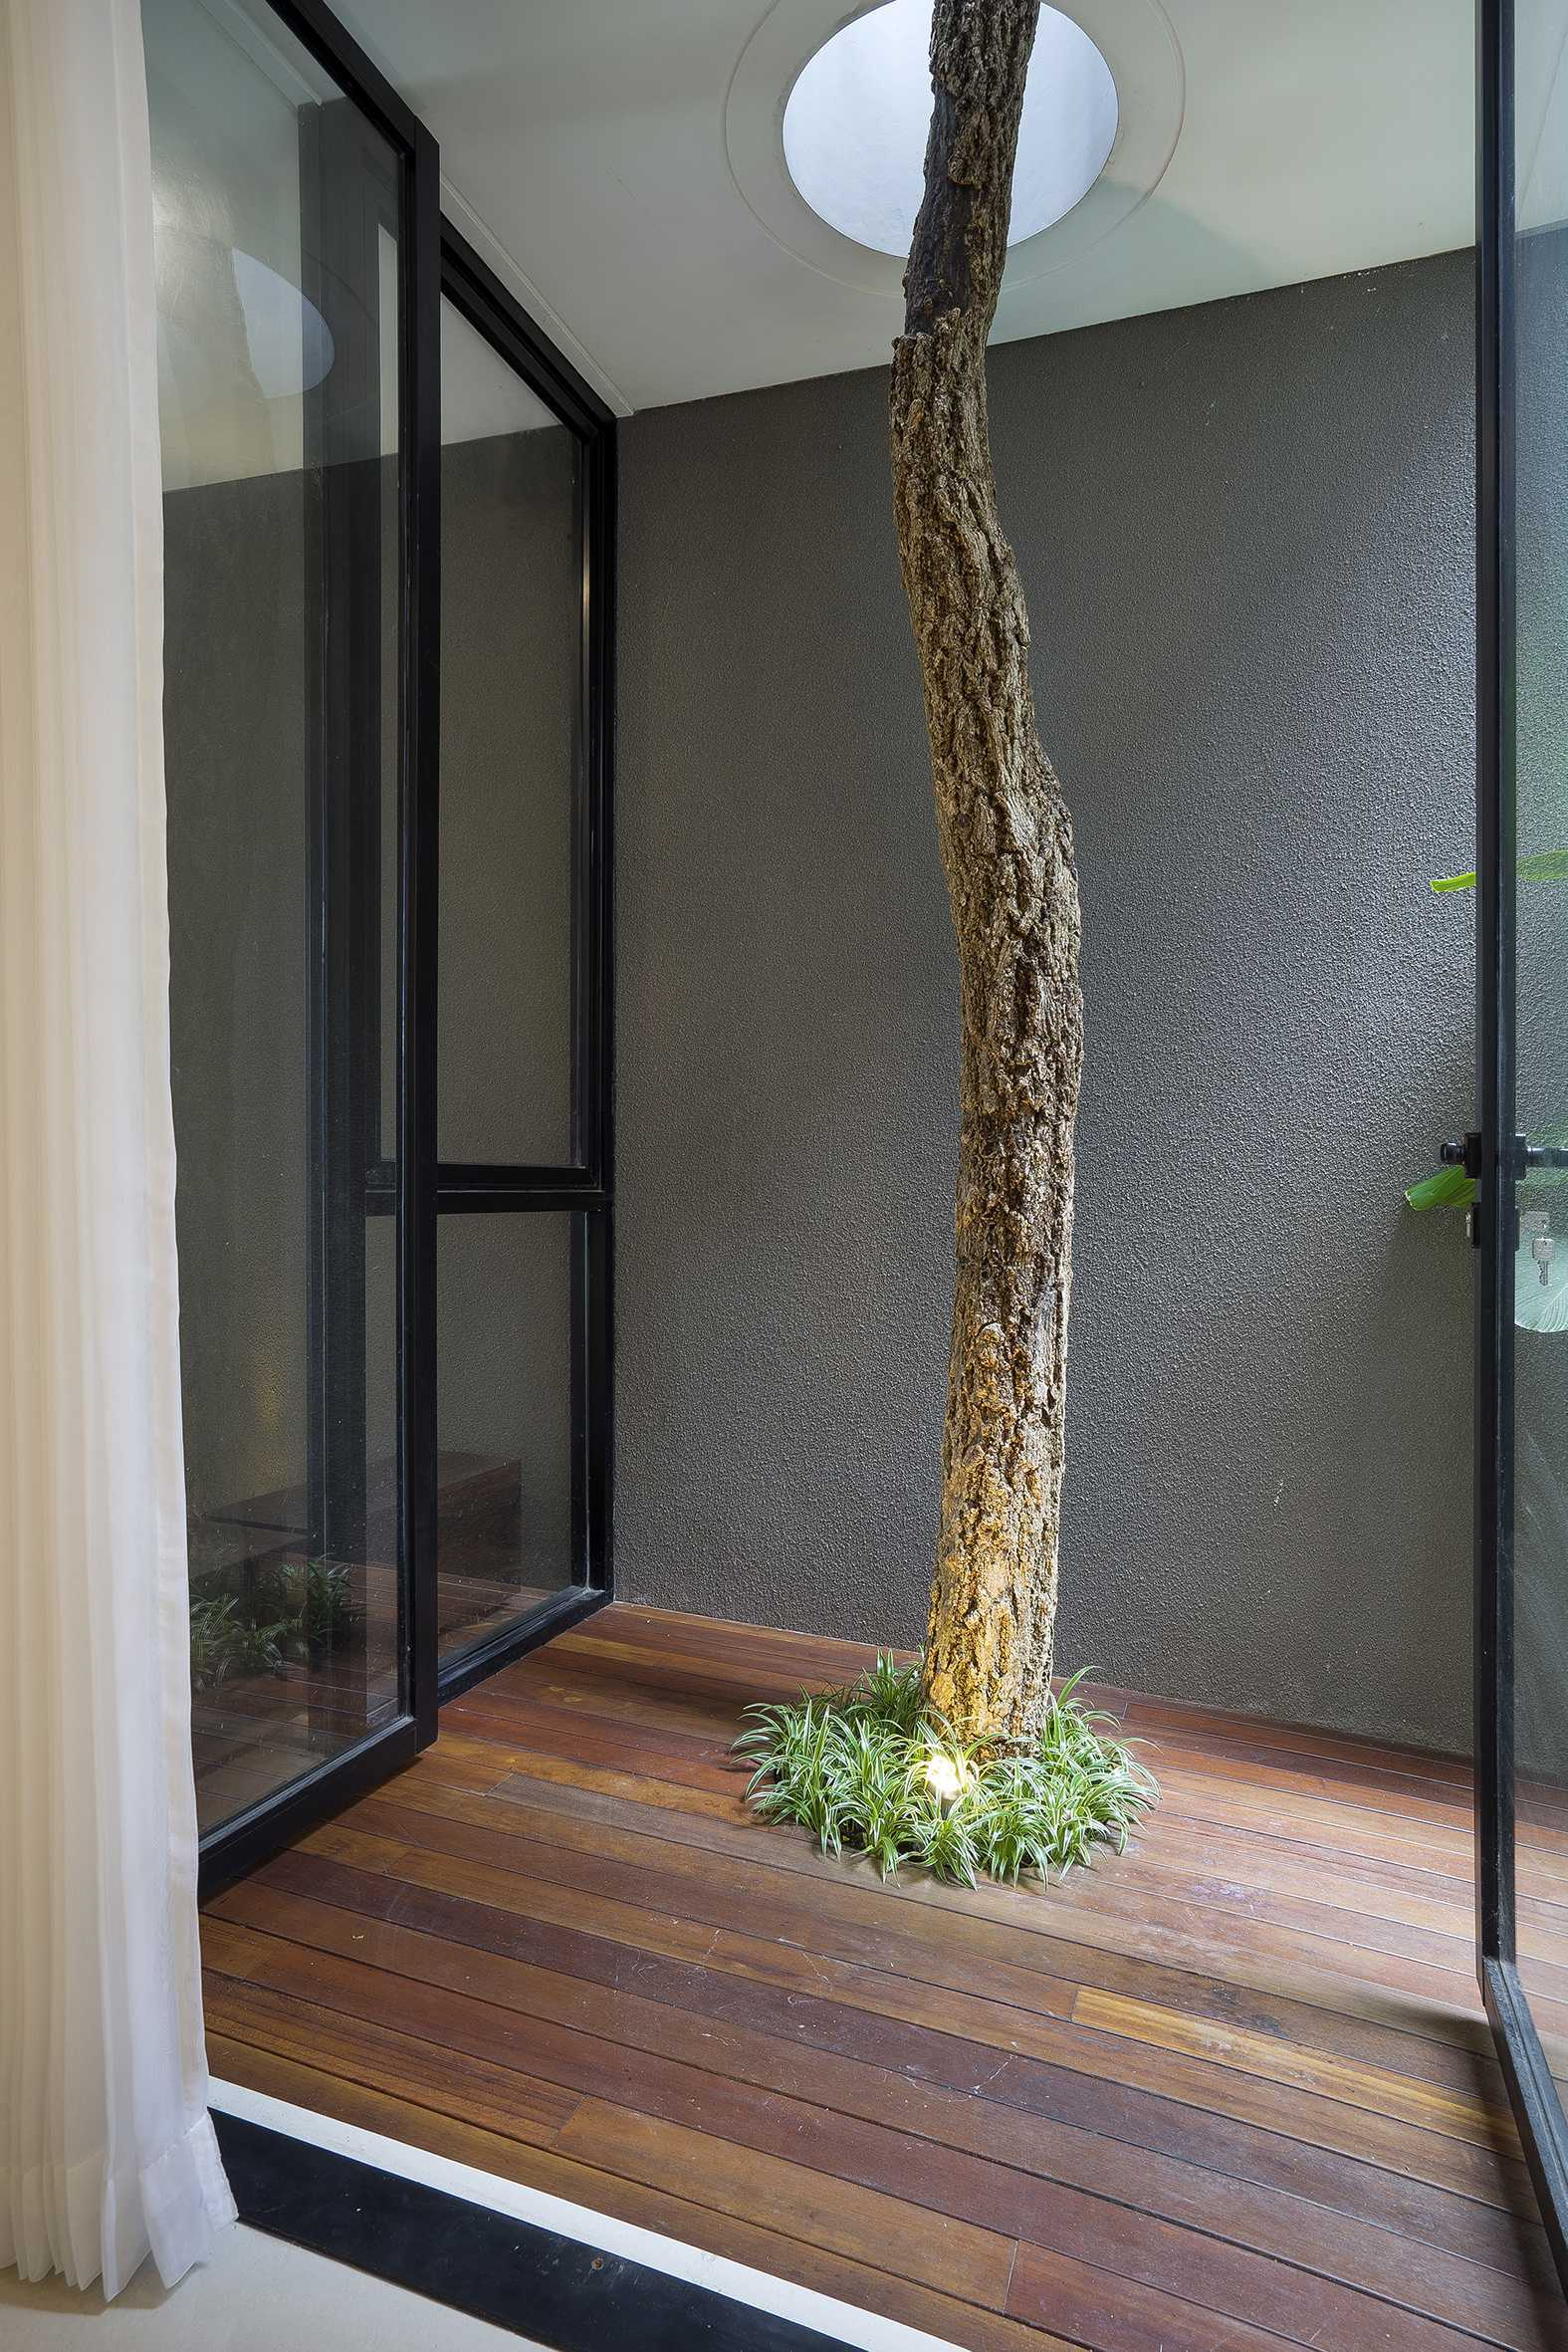 "Simple Projects Architecture ""s"" House Pakuwon Indah, Surabaya - Indonesia Pakuwon Indah, Surabaya - Indonesia Indoor Garden   32981"